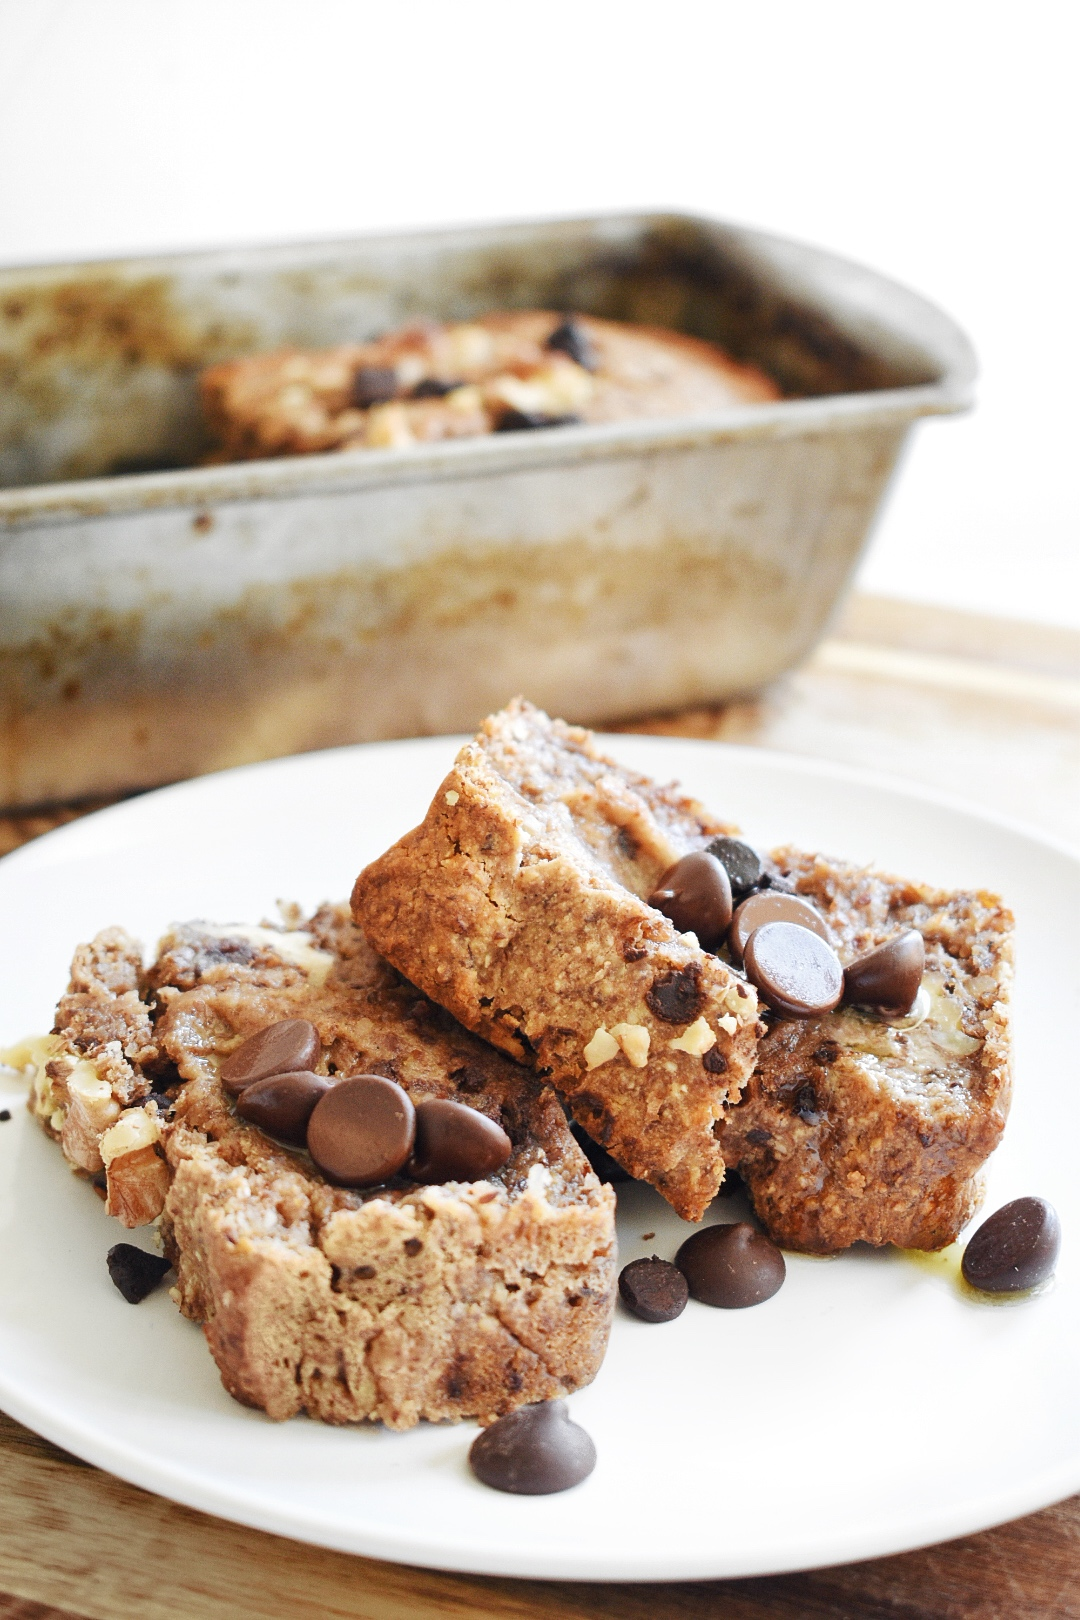 Coconut Chocolate Chip Banana Nut Bread